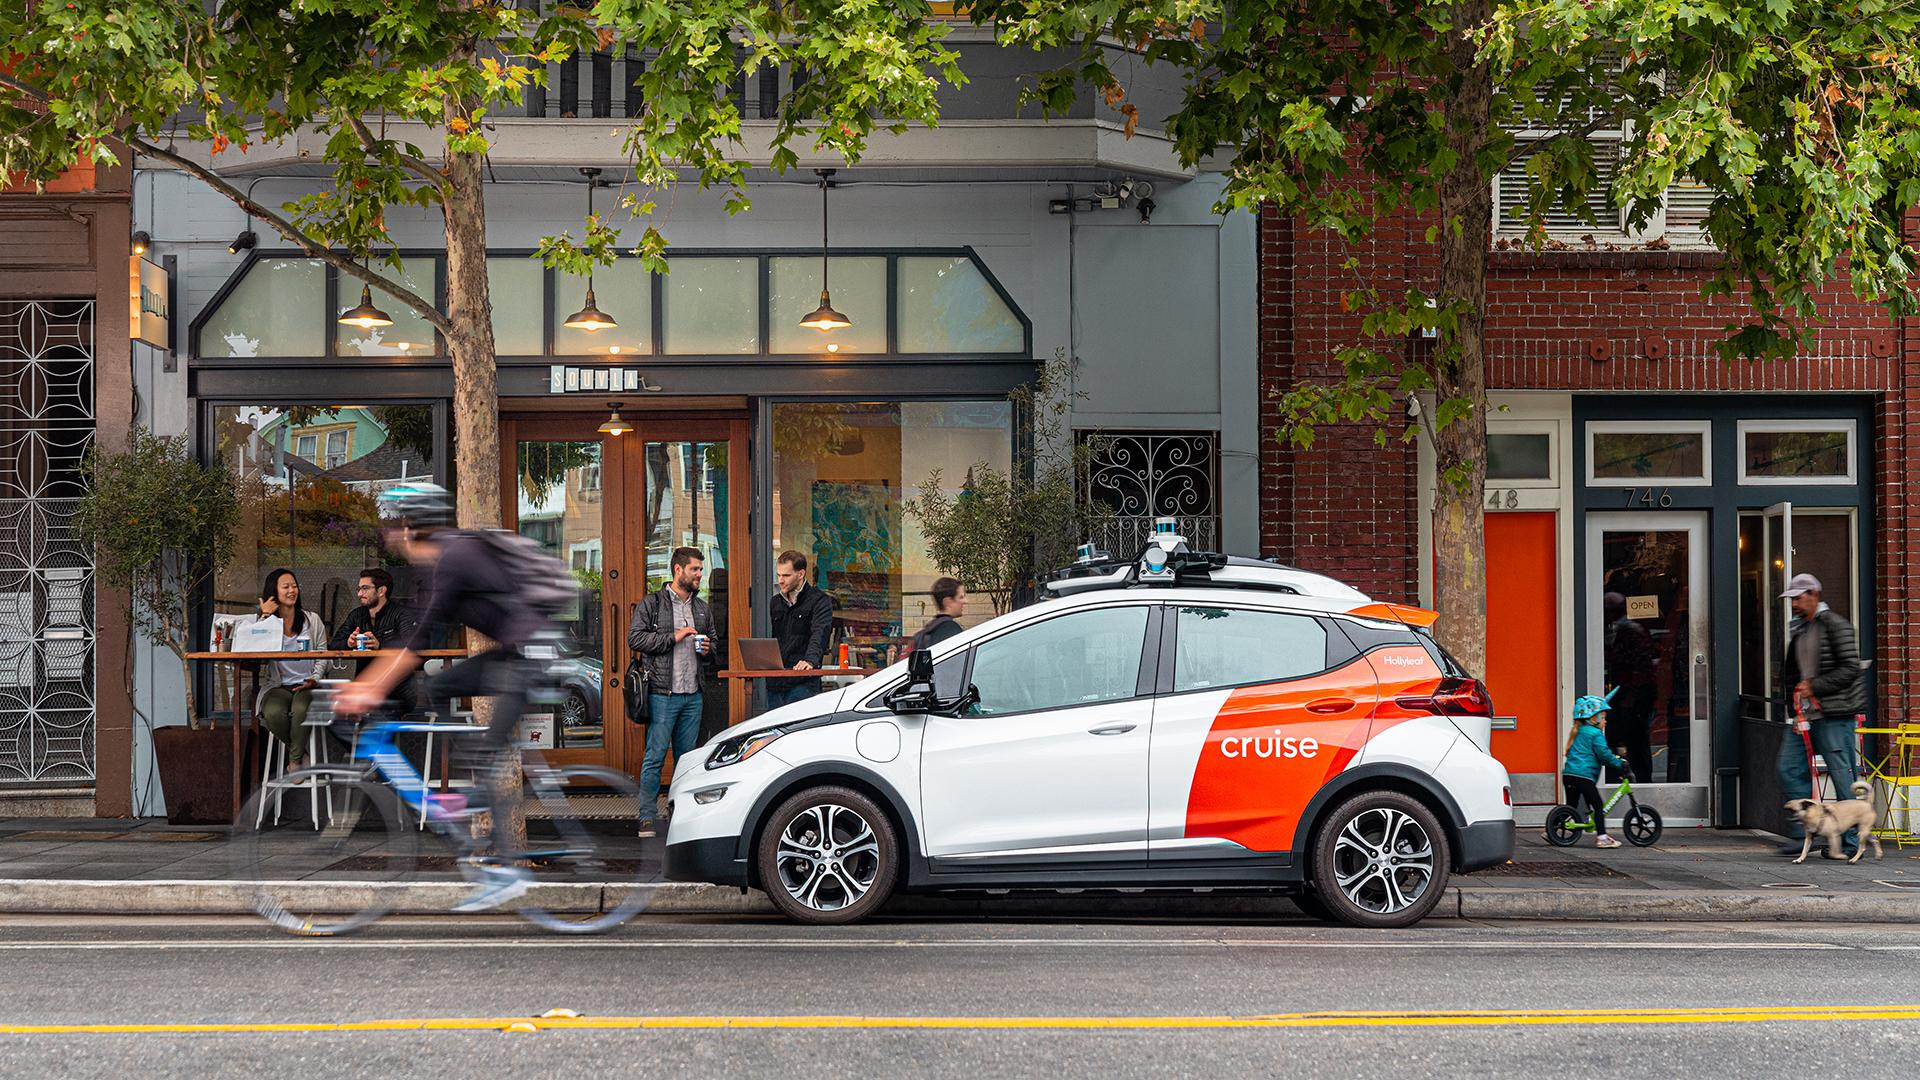 California bill would require all self-driving vehicles to be zero emission by 2025